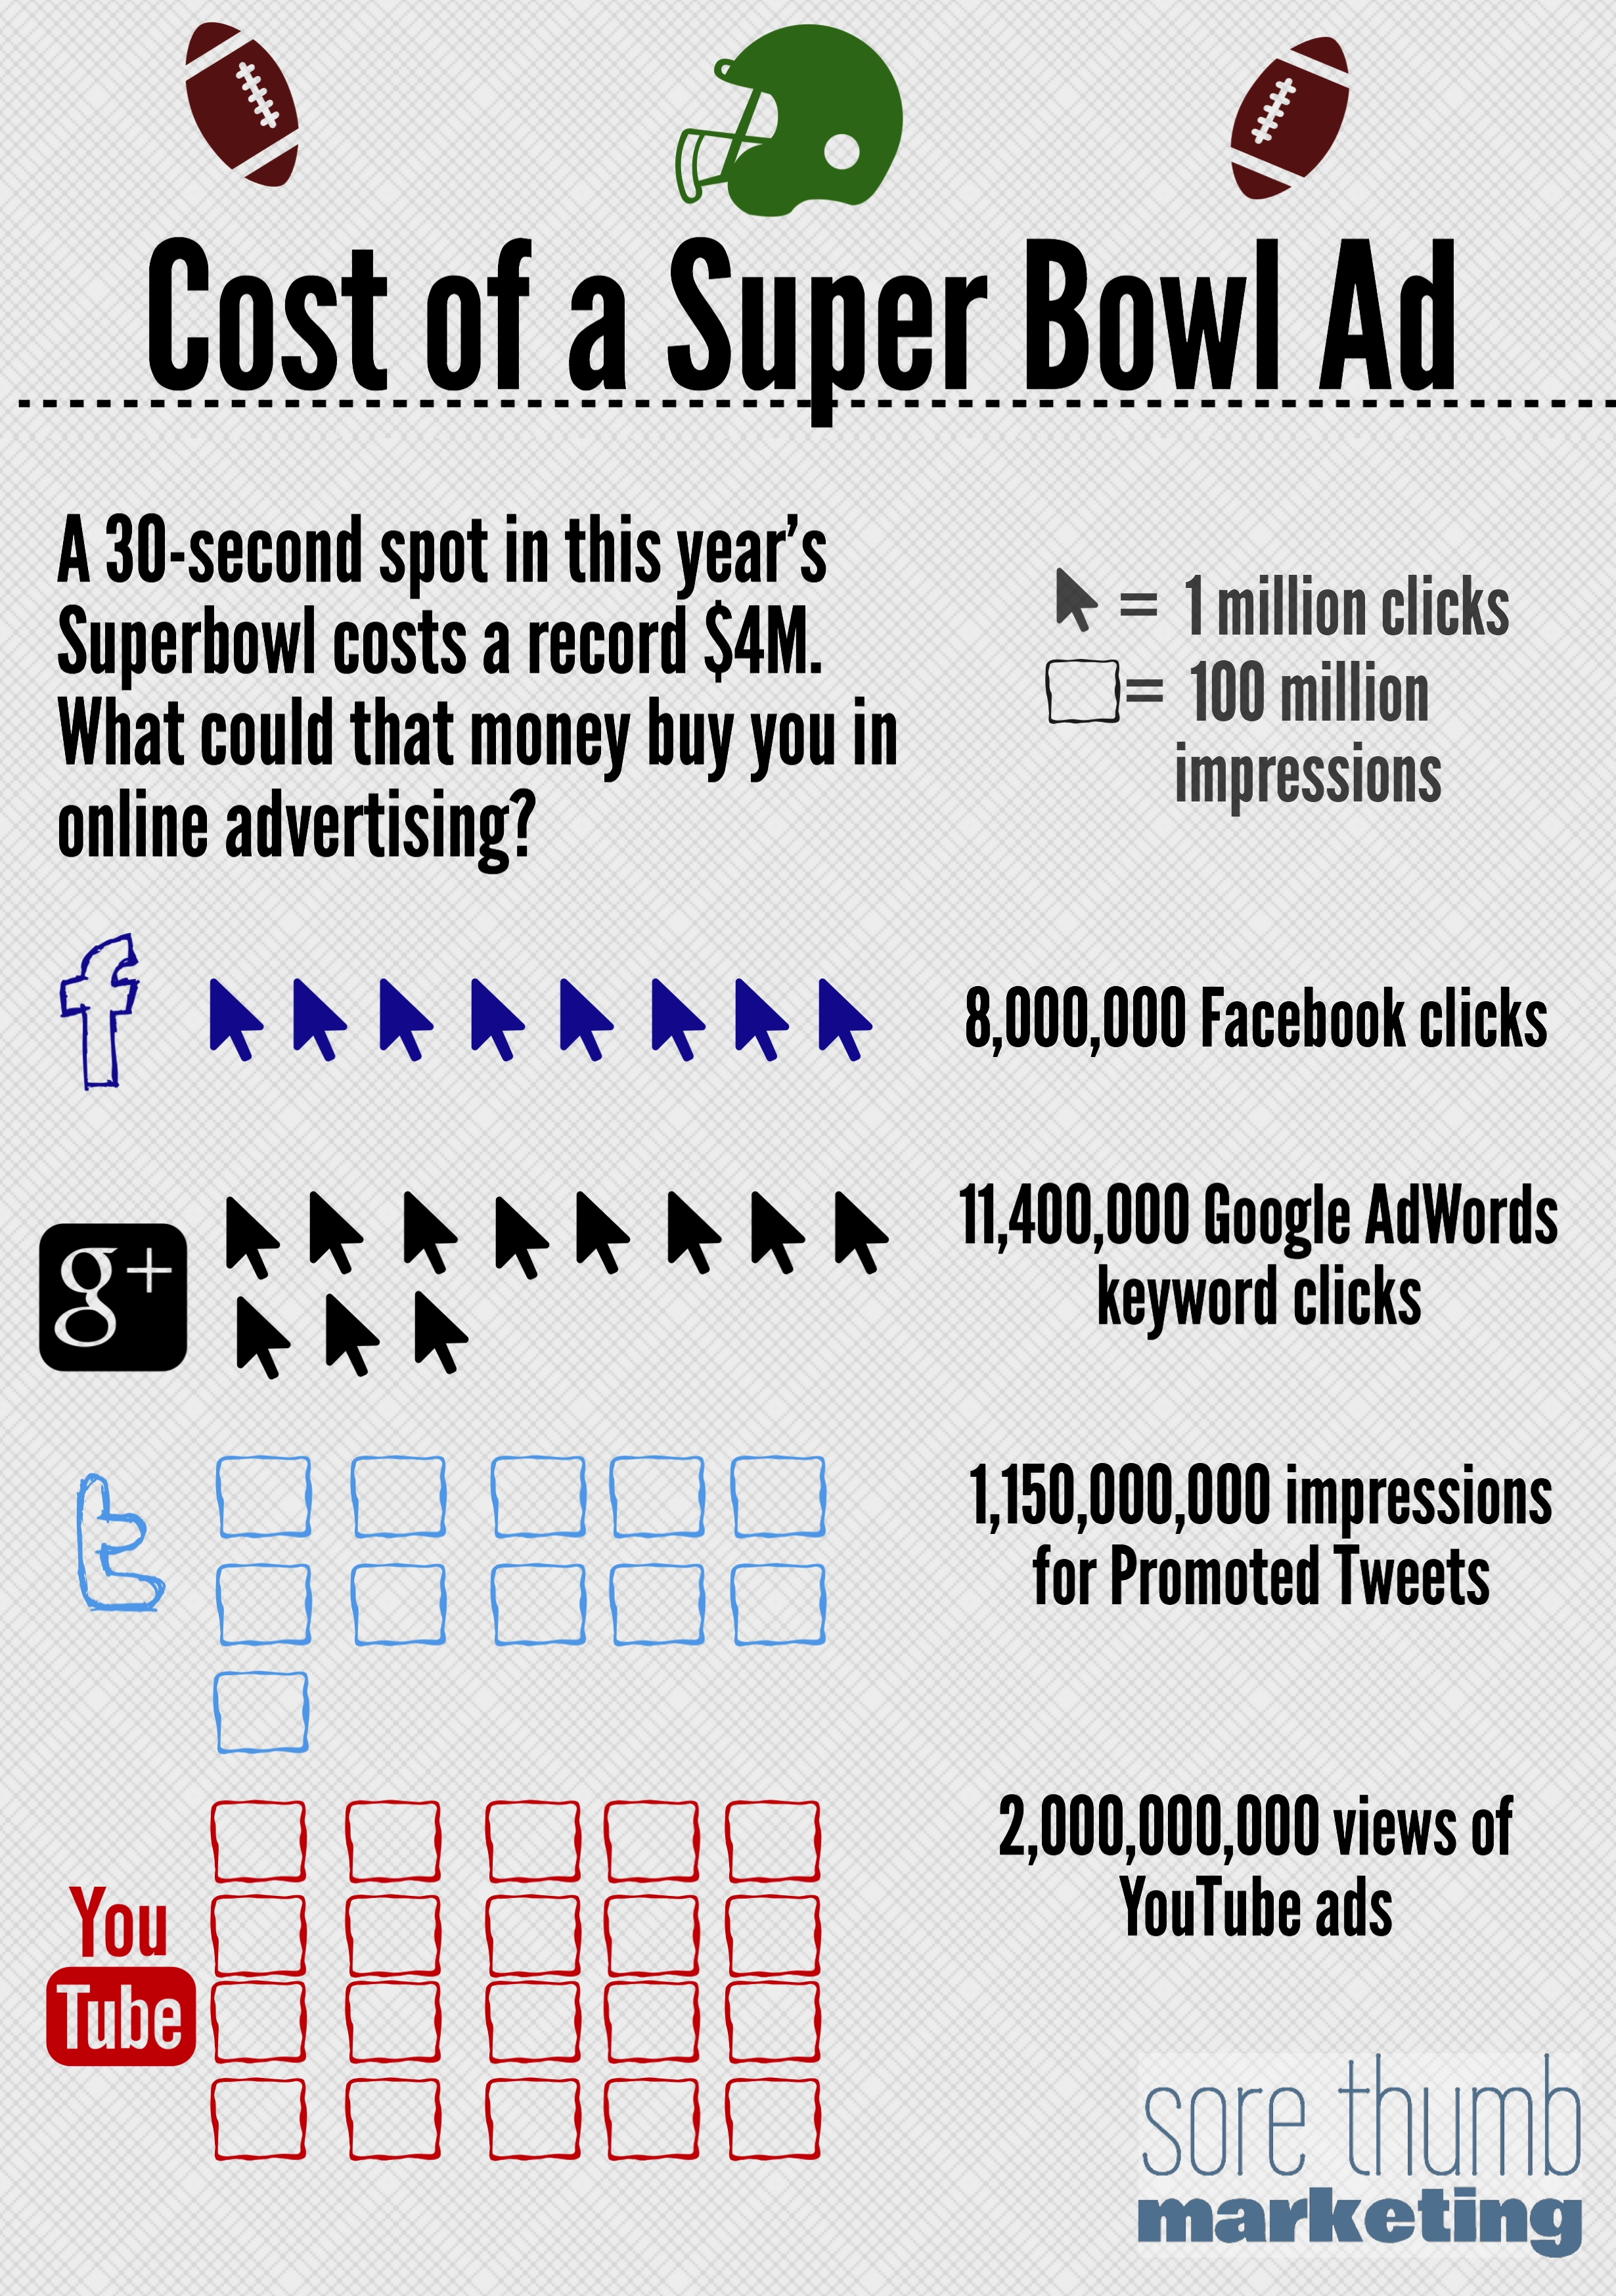 Opportunity Cost Of Superbowl Ads - Sore Thumb Marketing intended for Super Bowl Ad Cost